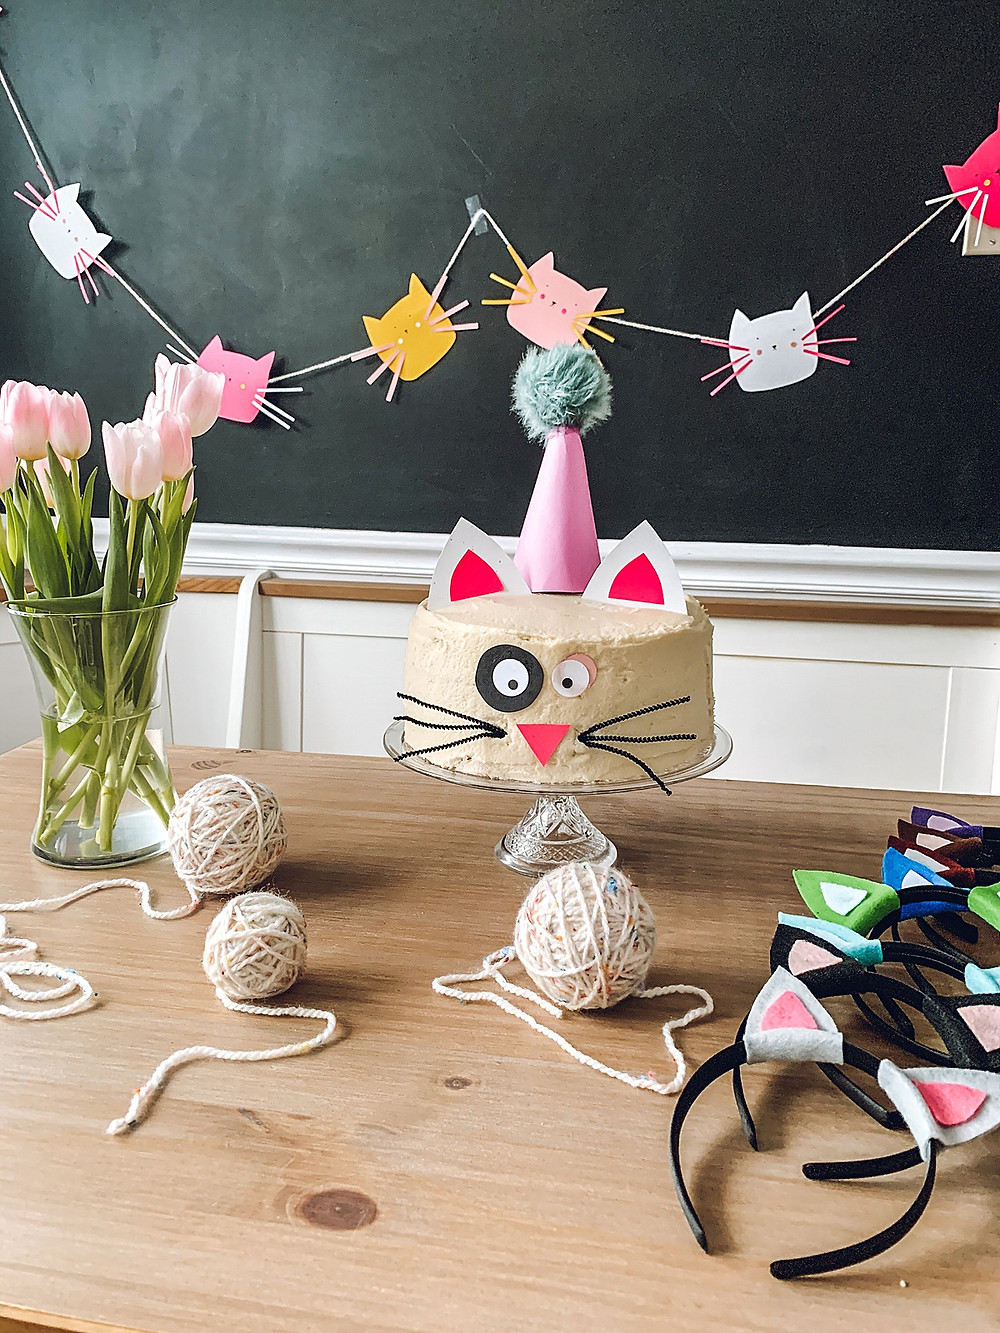 diy party ideas, diy cake cake, diy cake decorations, diy animal ear costume, diy costume, diy cat garland, diy garland, diy party, chocolate cake recipe, best chocolate cake recipe, bakery cake from a box mix, homemade chocolate whipped cream recipe, kids birthday party ideas, girls birthday party, boys birthday party, cat lover party, cat birthday party, diy cat crafts, easy diy party decorations, easy diy ideas, cheap diy ideas, cheap diy party decorations, cake decorating diy, yarn crafts, 2 year old party, 2 year old party theme